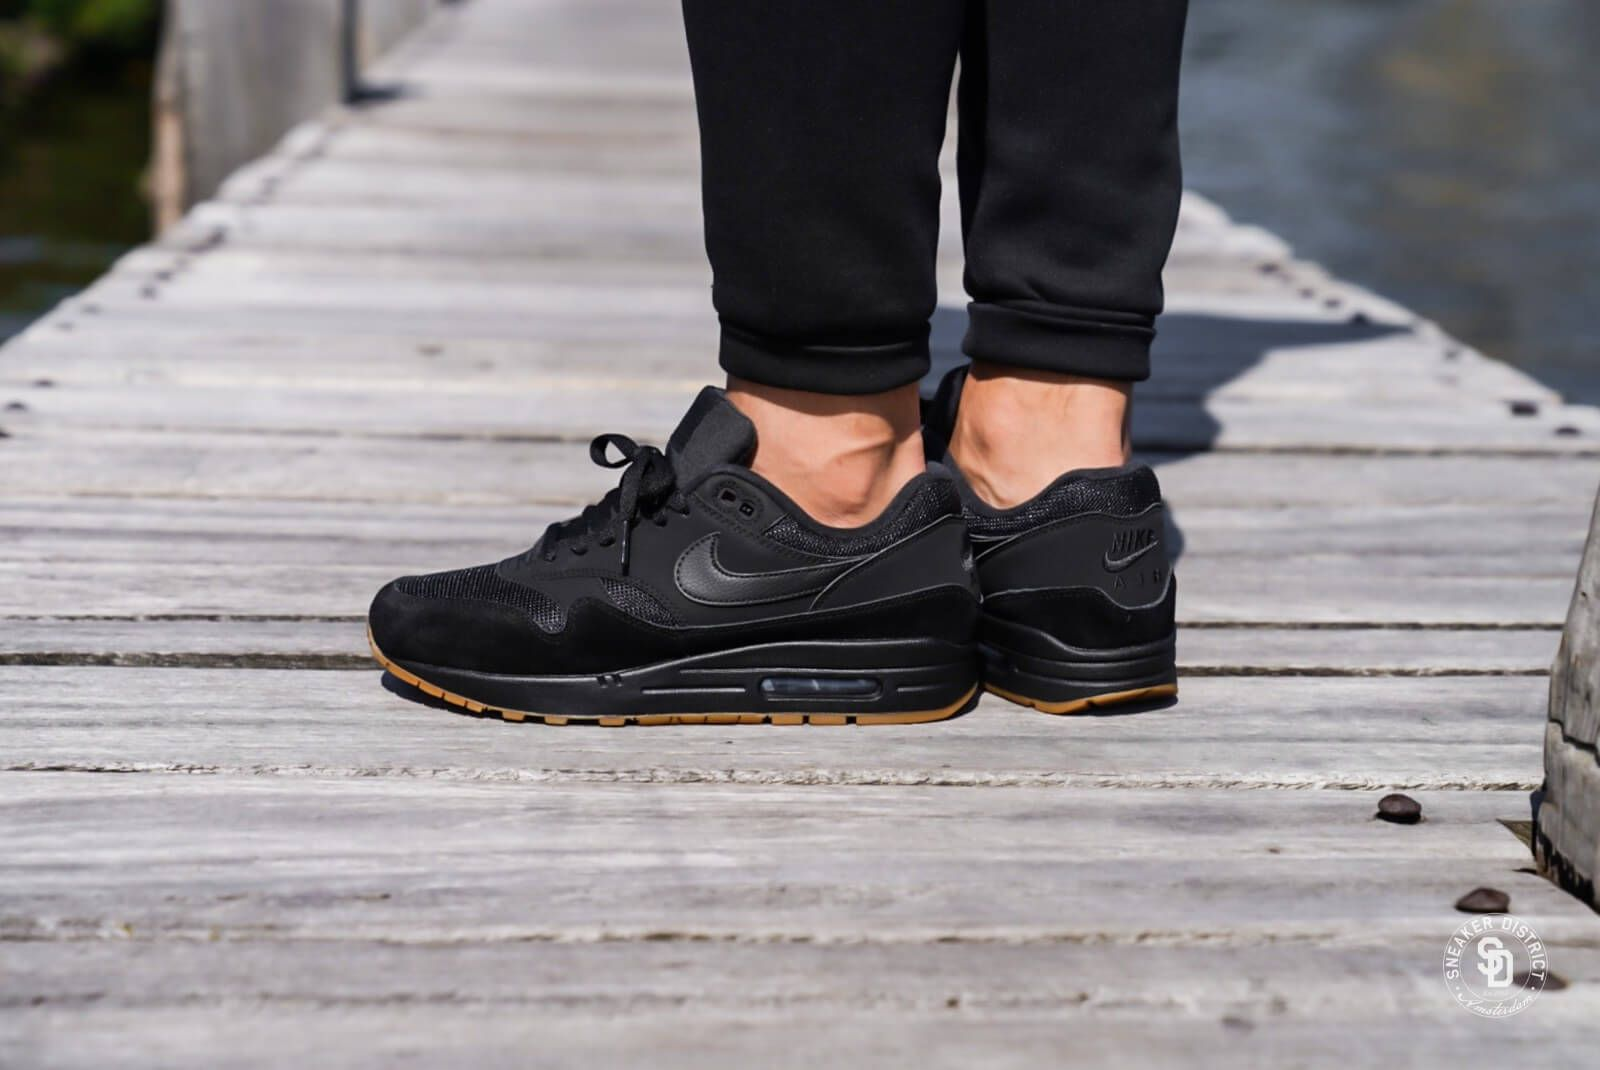 big sale 5efd5 5cf07 Nike Air Max 1 BlackBlack-Gum - AH8145-007